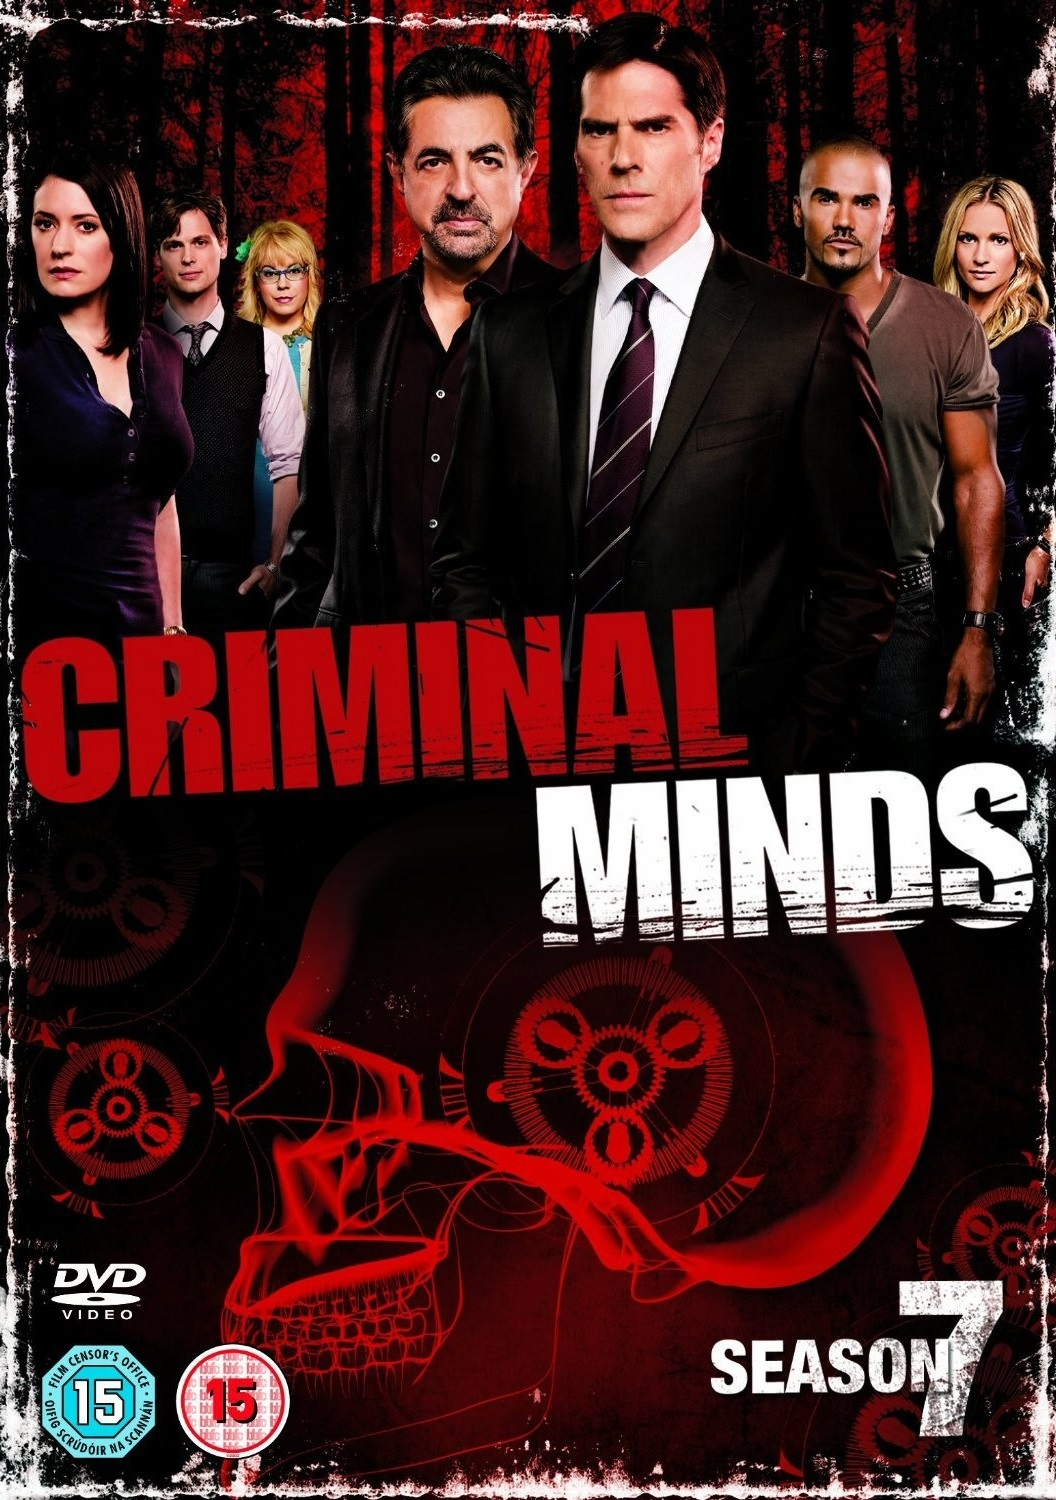 criminal minds season 7 in hd 720p